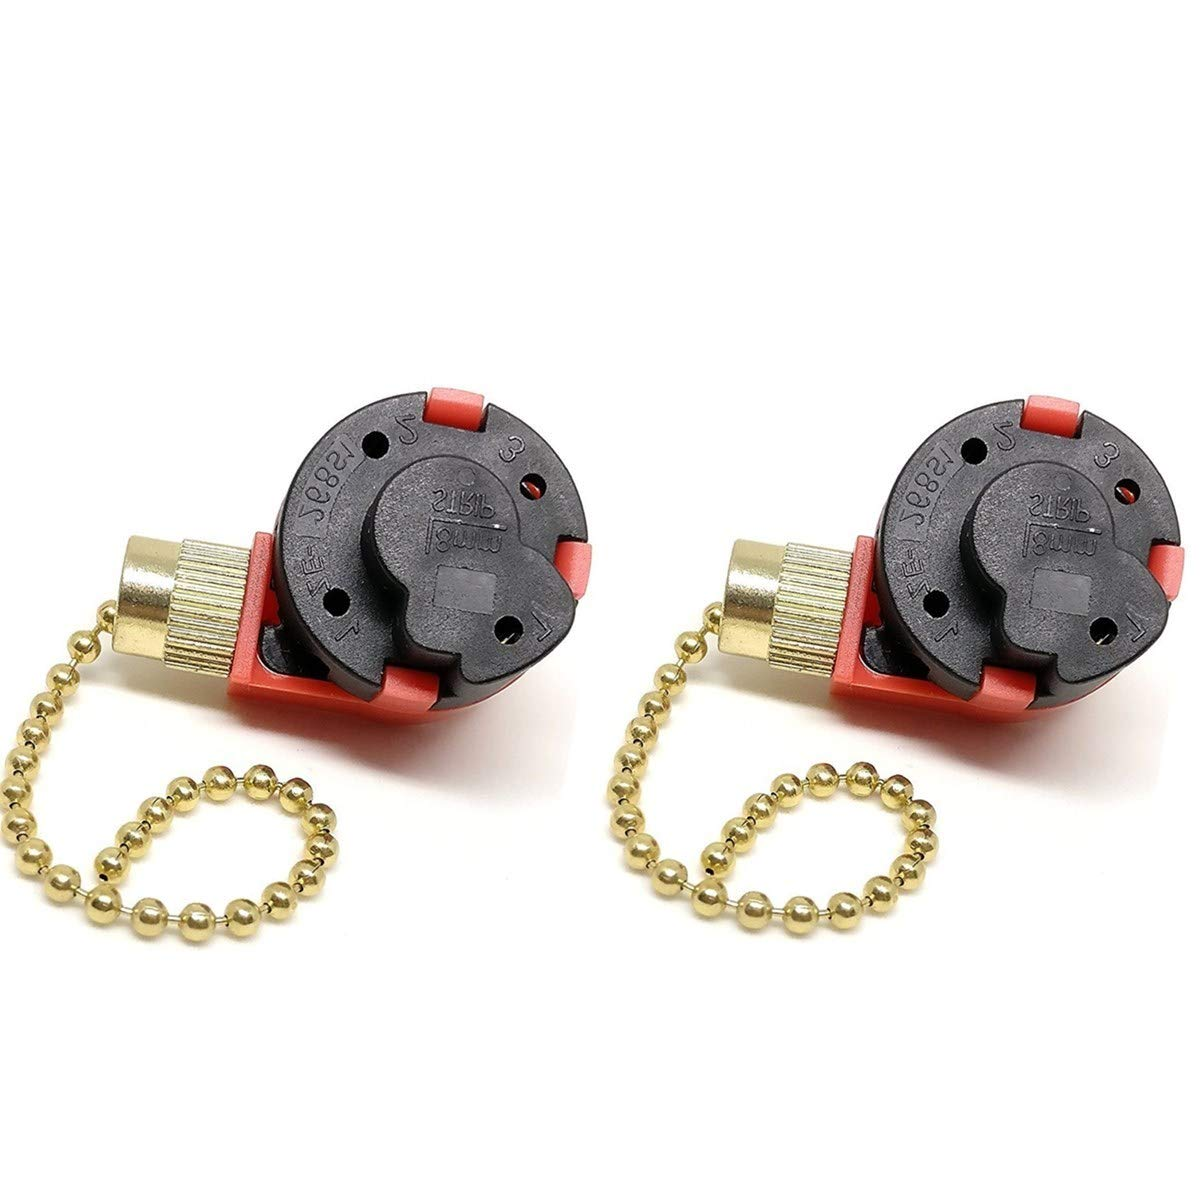 2Pack Zing Ear ZE-268S1 Ceiling Fan Switch 3 Speed 4 Wire, Ceiling Fan Switch with Pull Chain Control for Ceiling Fans, Lamps and Wall Light (Brass)